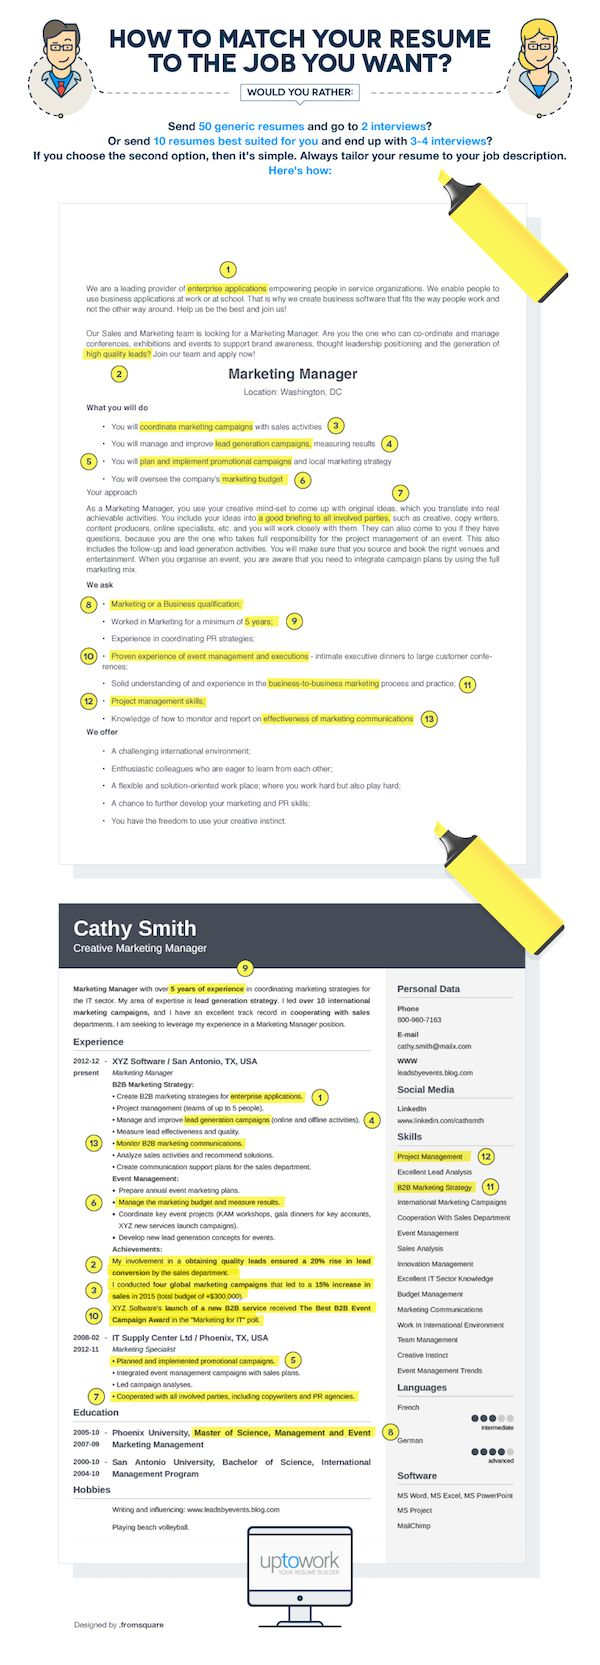 345 best Resume Tips images on Pinterest | Resume tips, Gym and ...